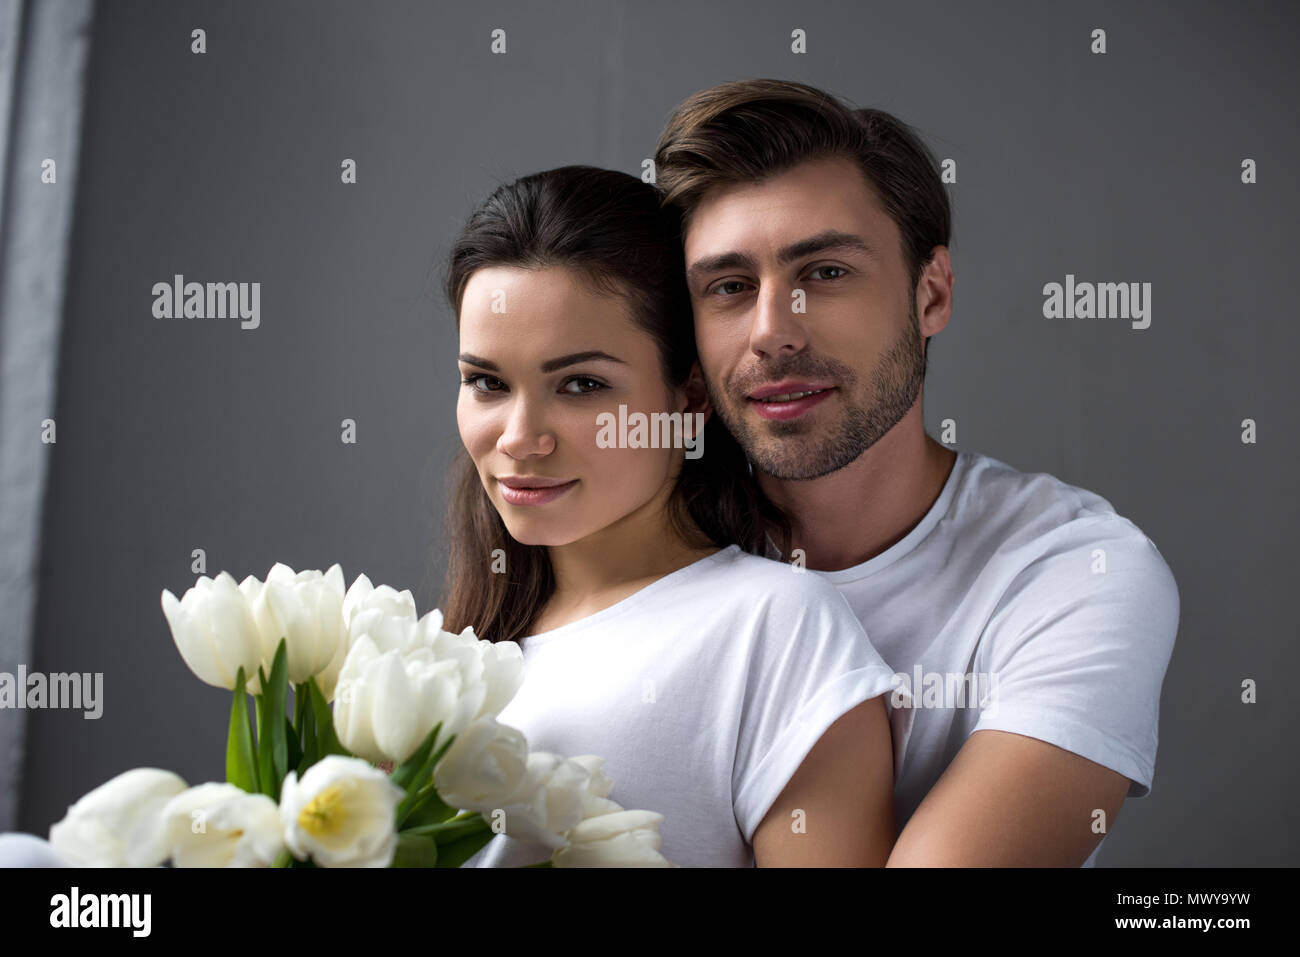 Smiling man and woman with flowers tenderly embracing in bedroom - Stock Image